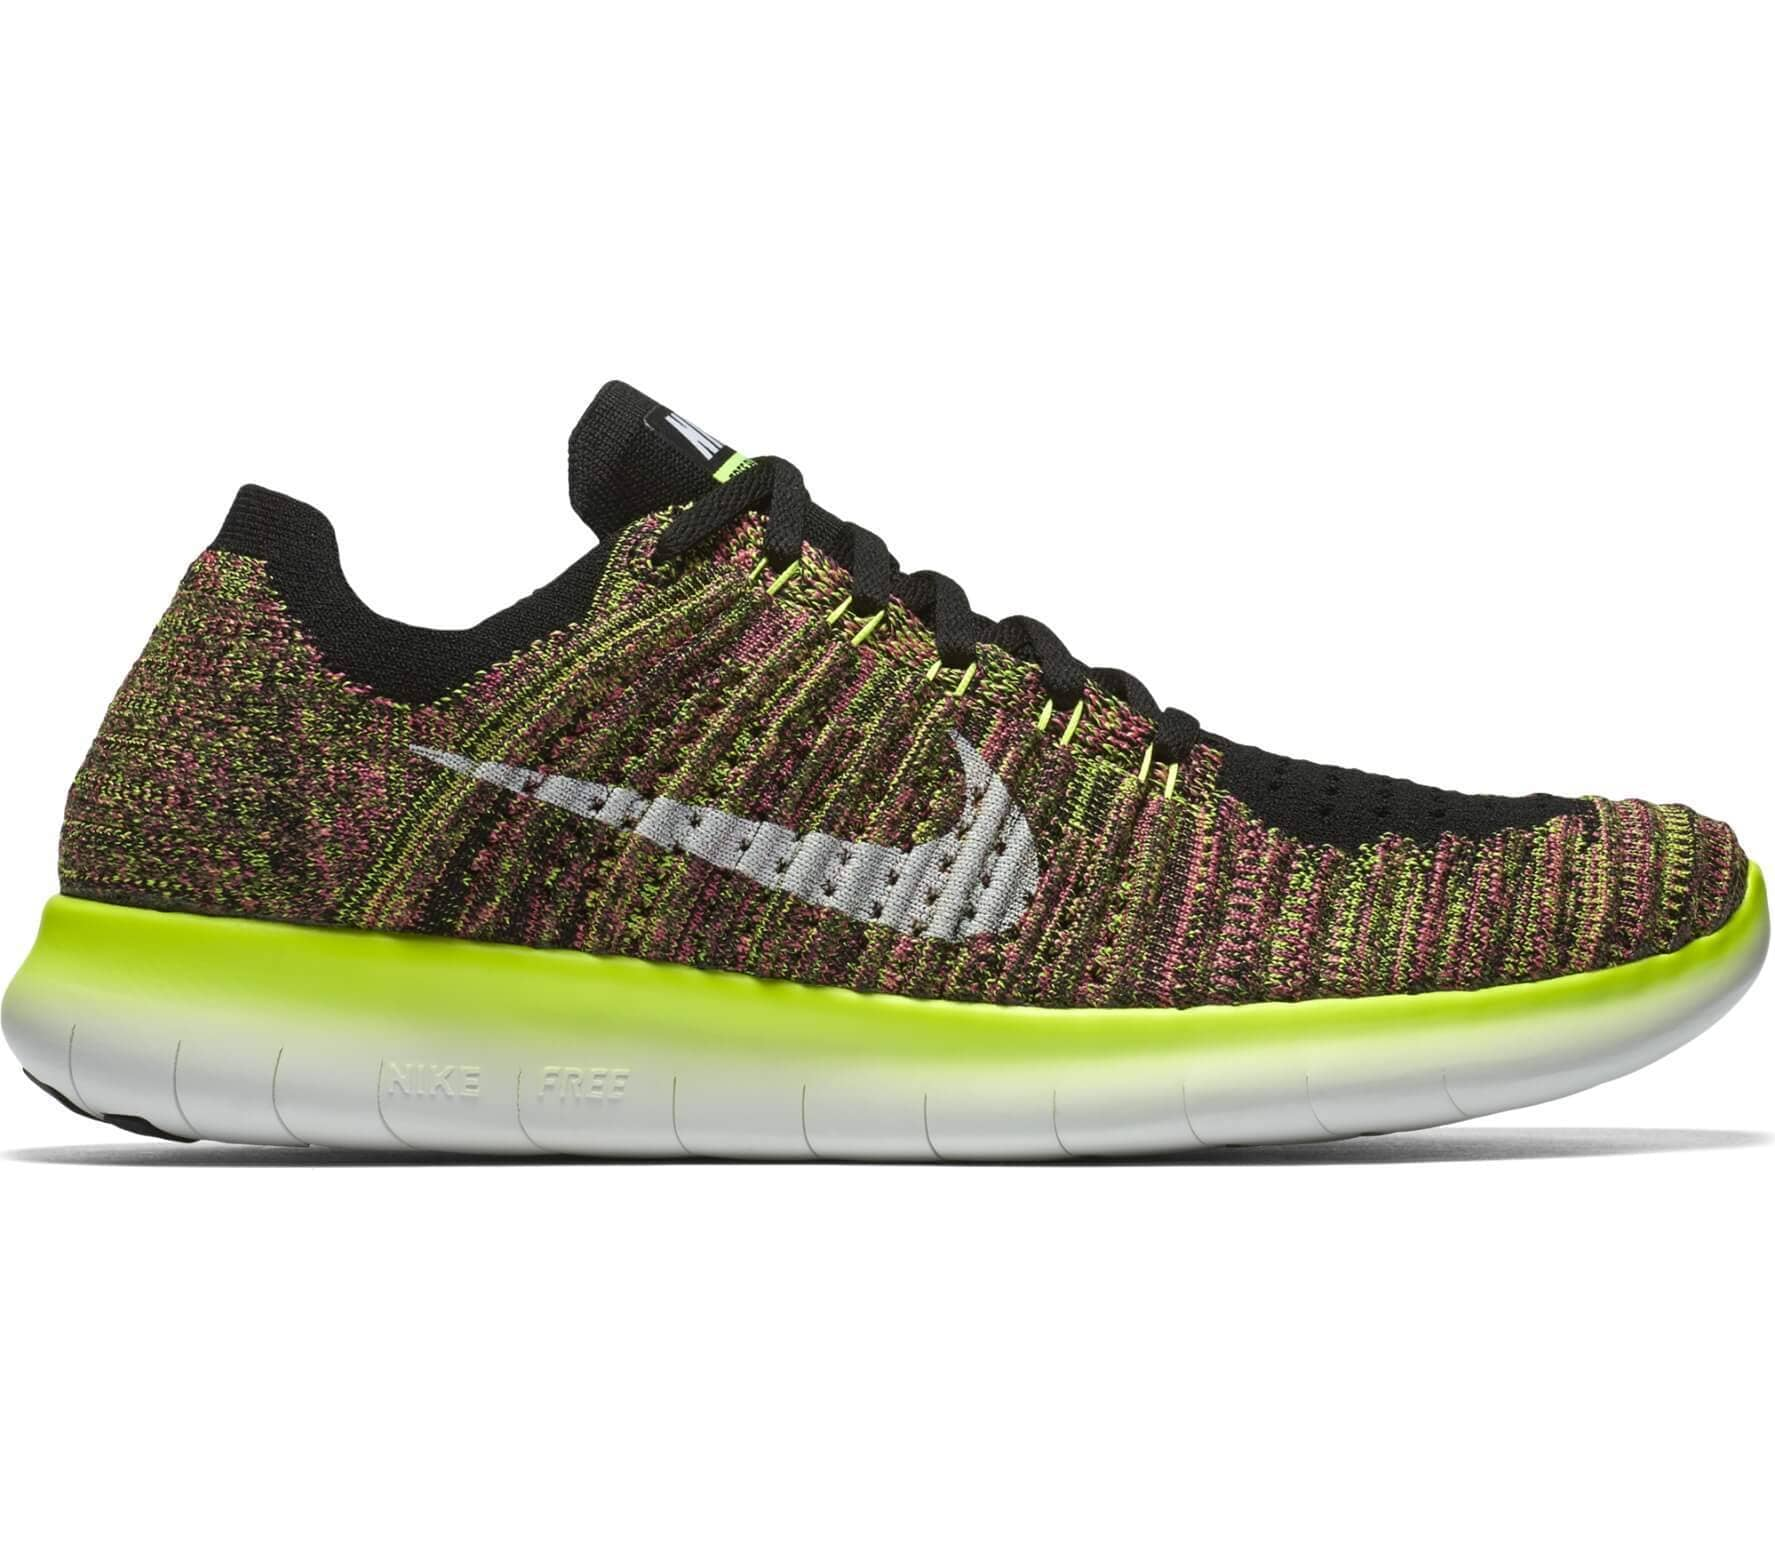 d28fb453120c Nike - Free Run Flyknit OC men s running shoes (multi coloured ...